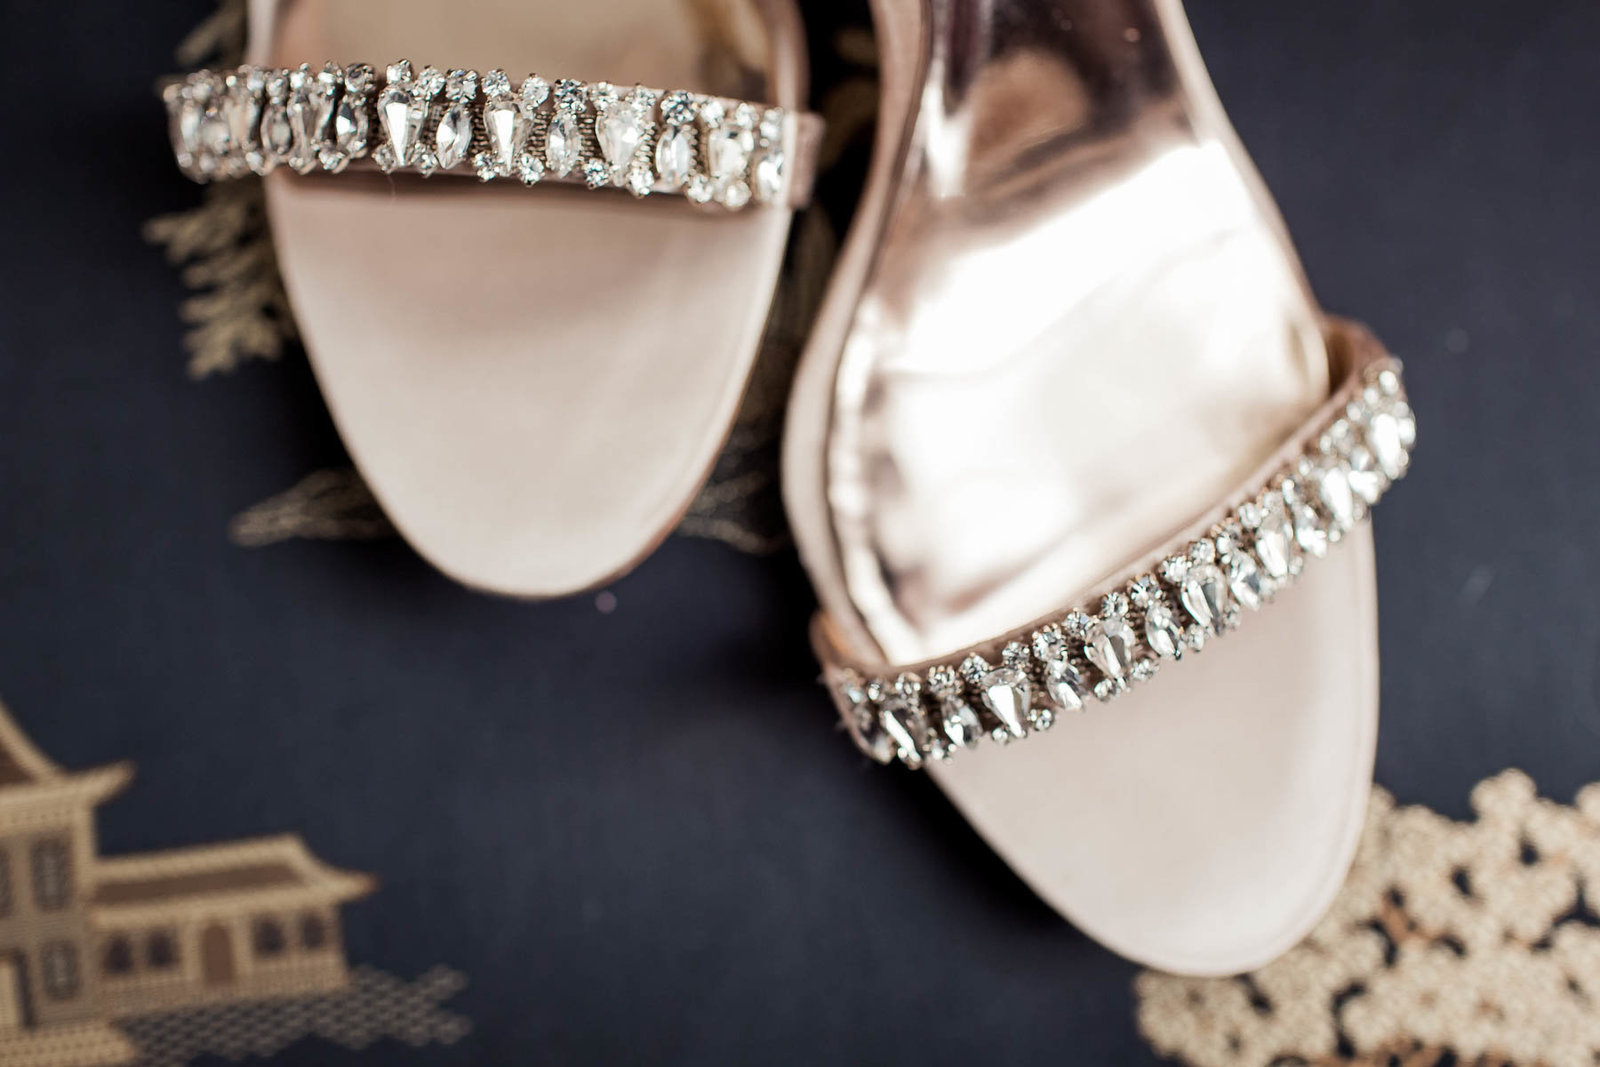 Bride's shoes sit on vintage chair, Downtown Private Estate, Charleston, South Carolina. Kate Timbers Photography.